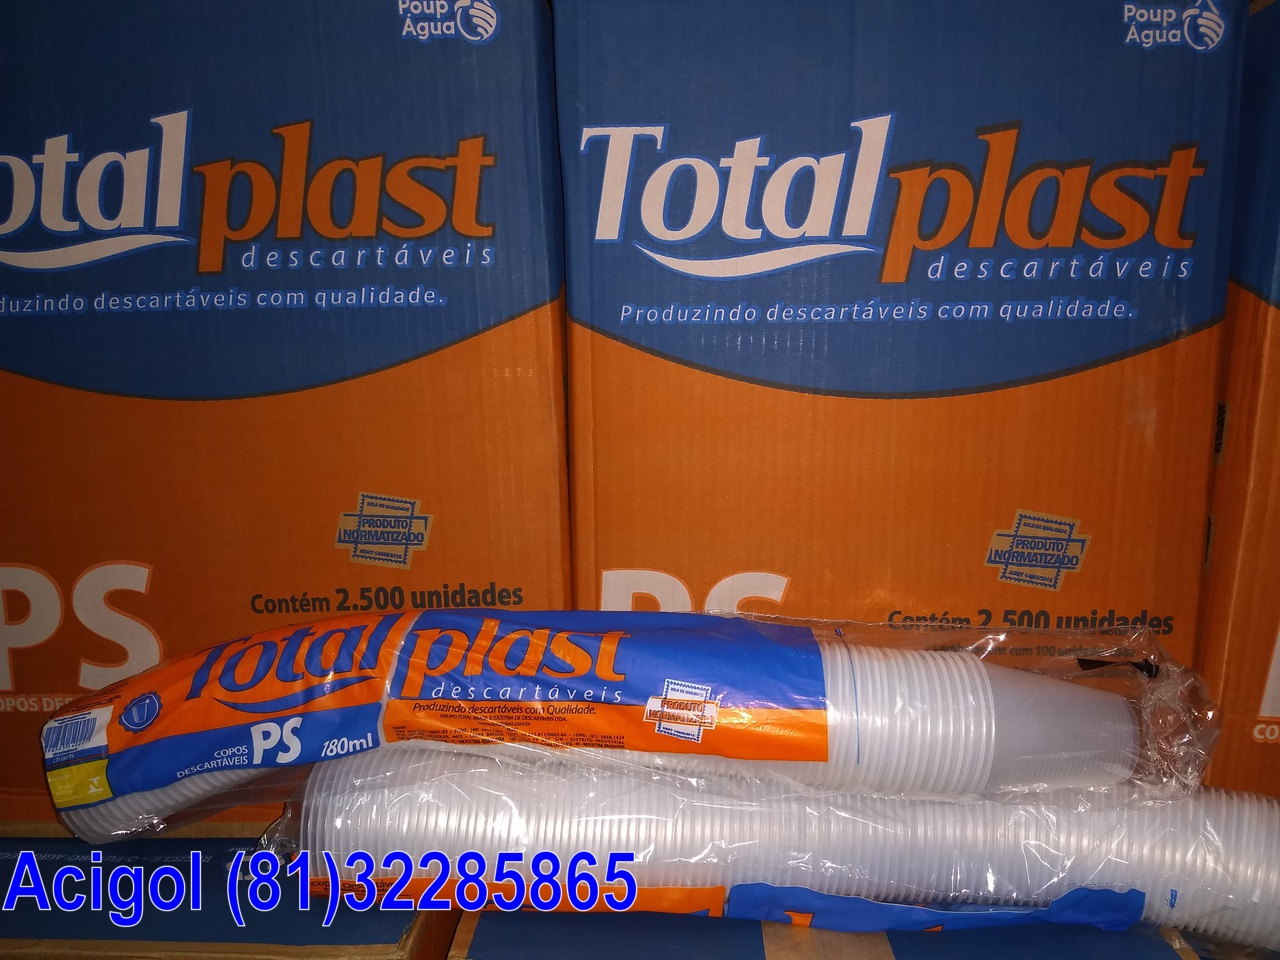 COPO DESCARTAVEL 180ML TOTALPLAST-ACIGOL 81 32285865-IMG_20171227_205352966